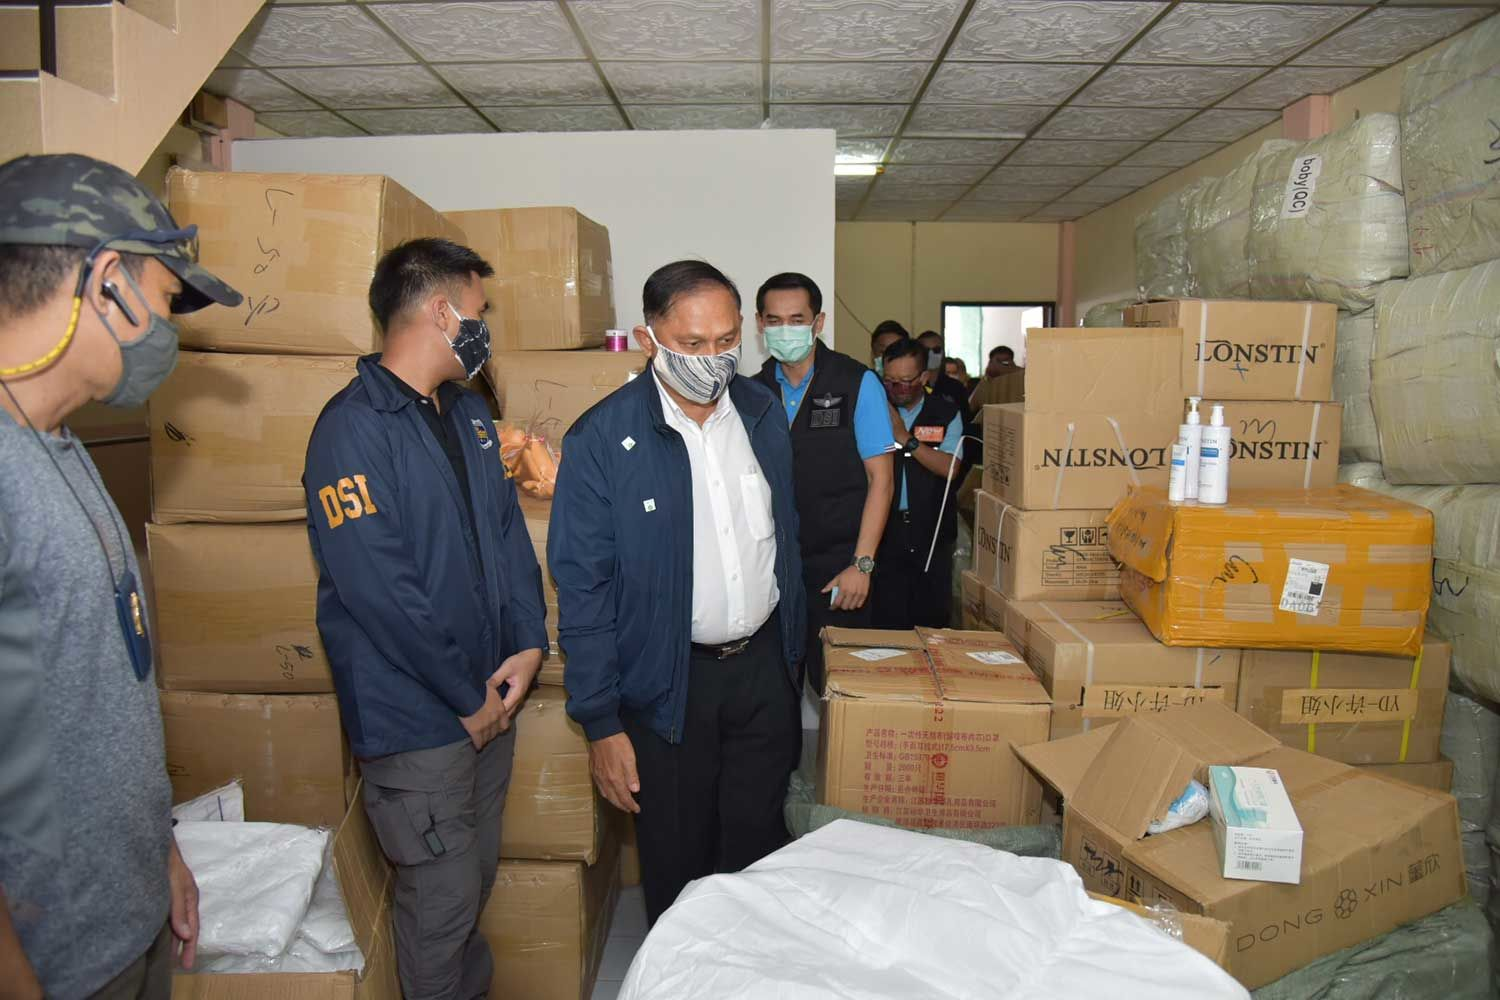 Masks, hand gel and PPE valued at 5 million baht seized in Bangkok | News by Thaiger